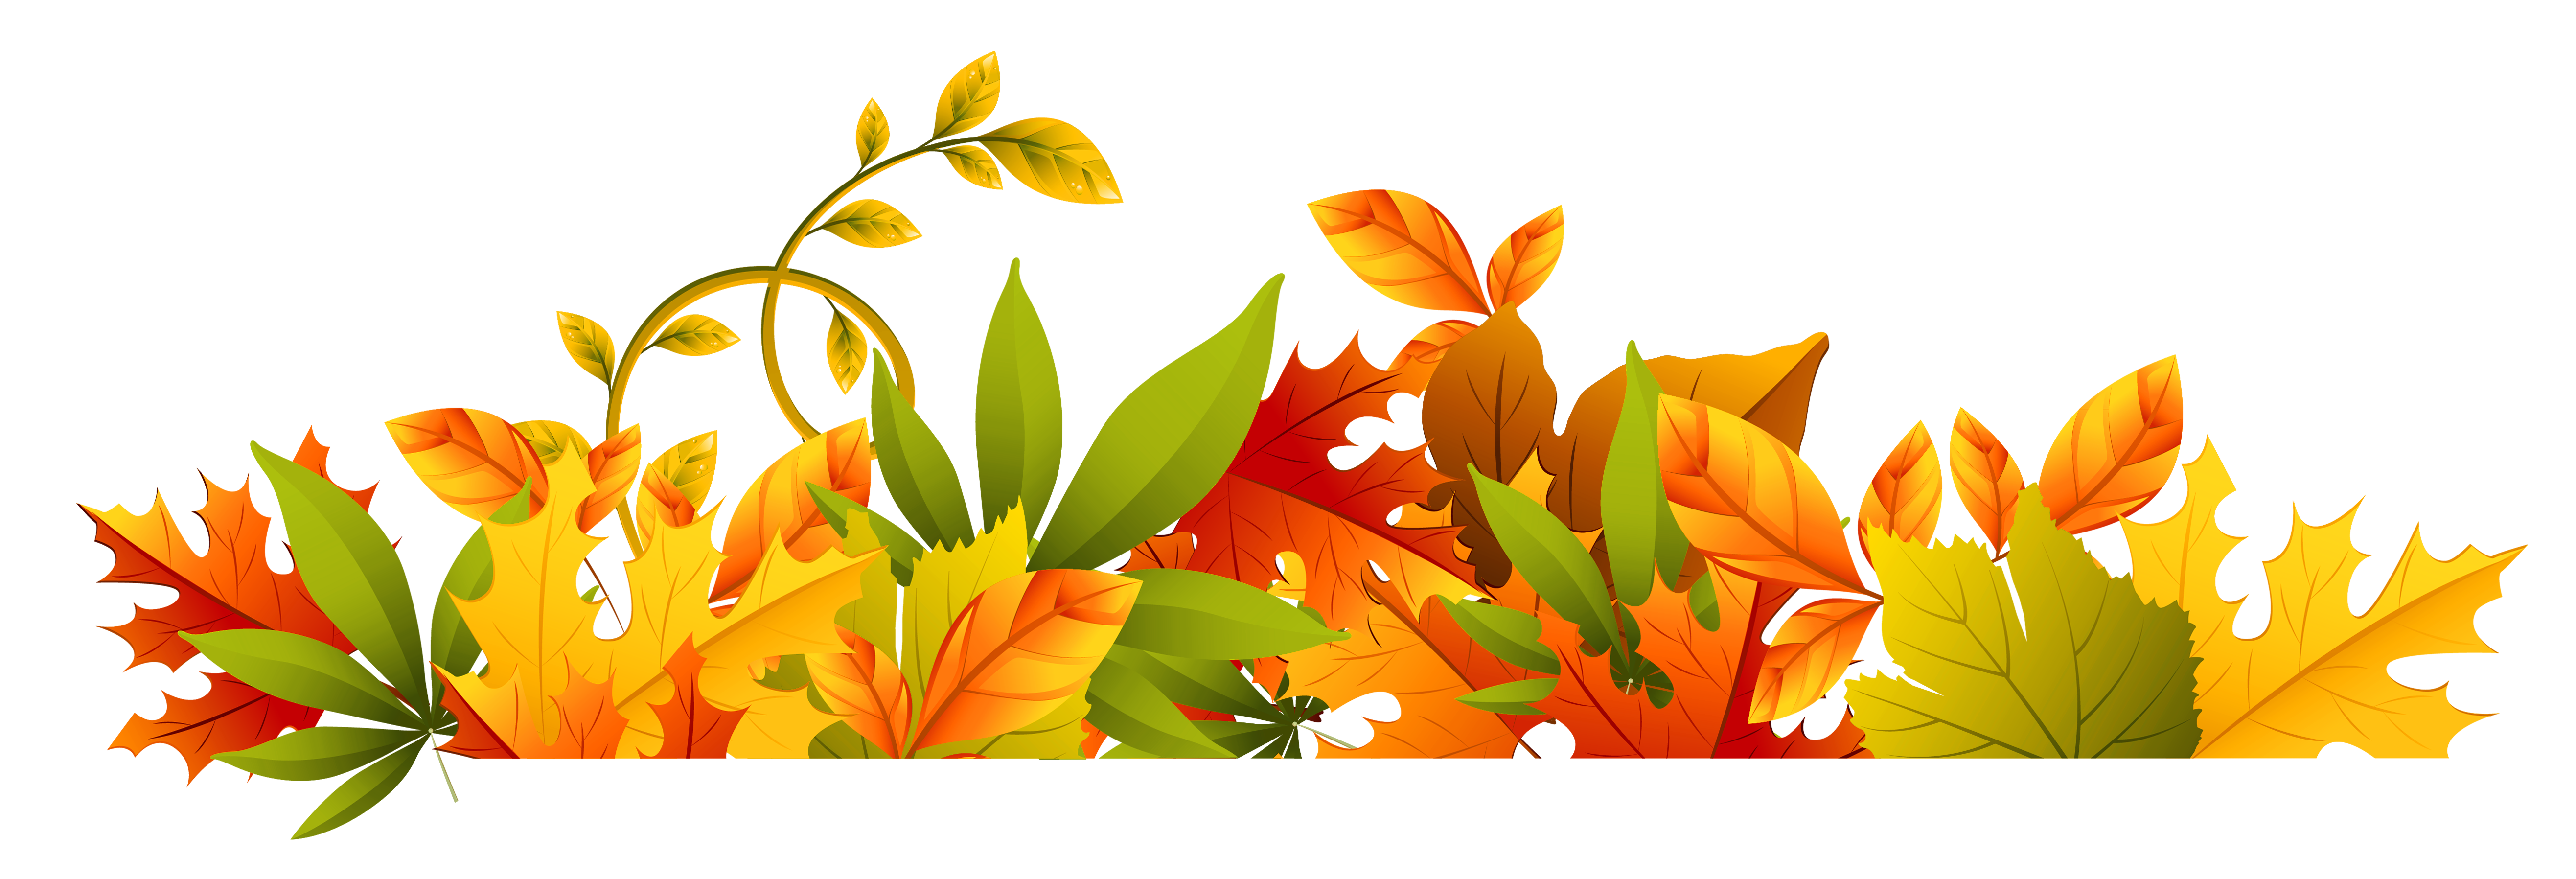 Fall Images Png - Transparent Autumn Border PNG Clipart   Gallery Yopriceville ...